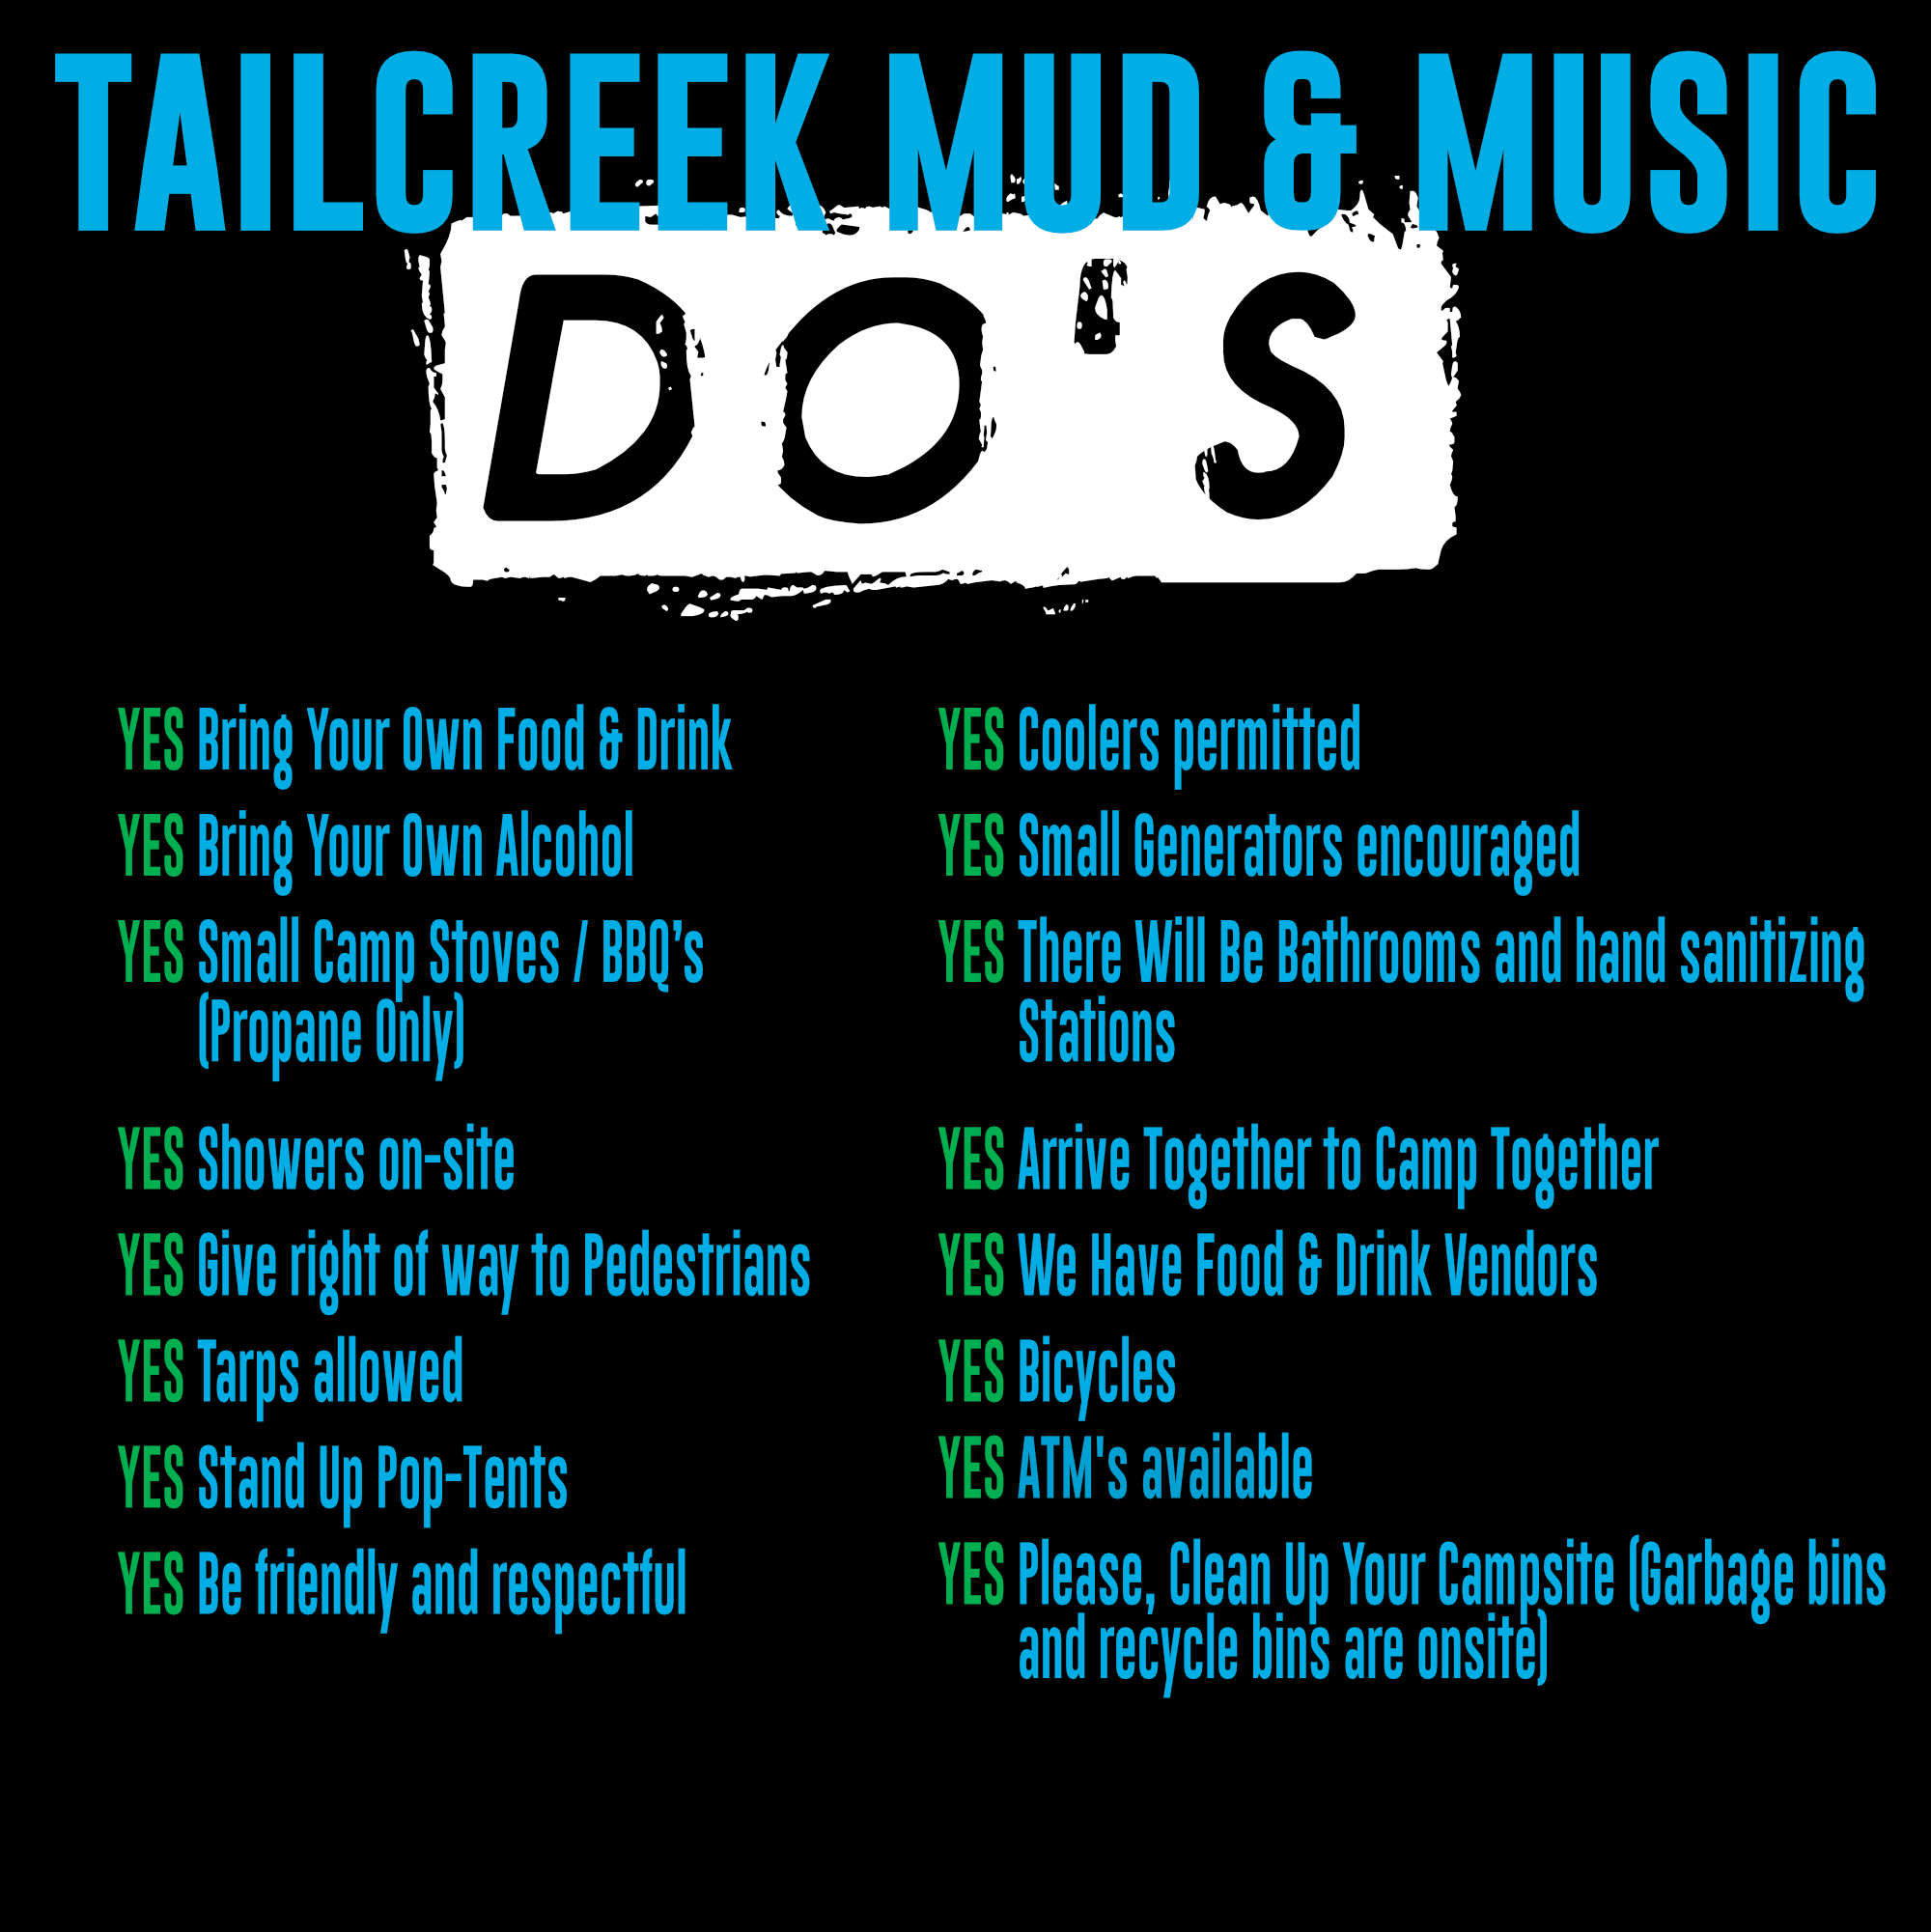 Tail creek dos b